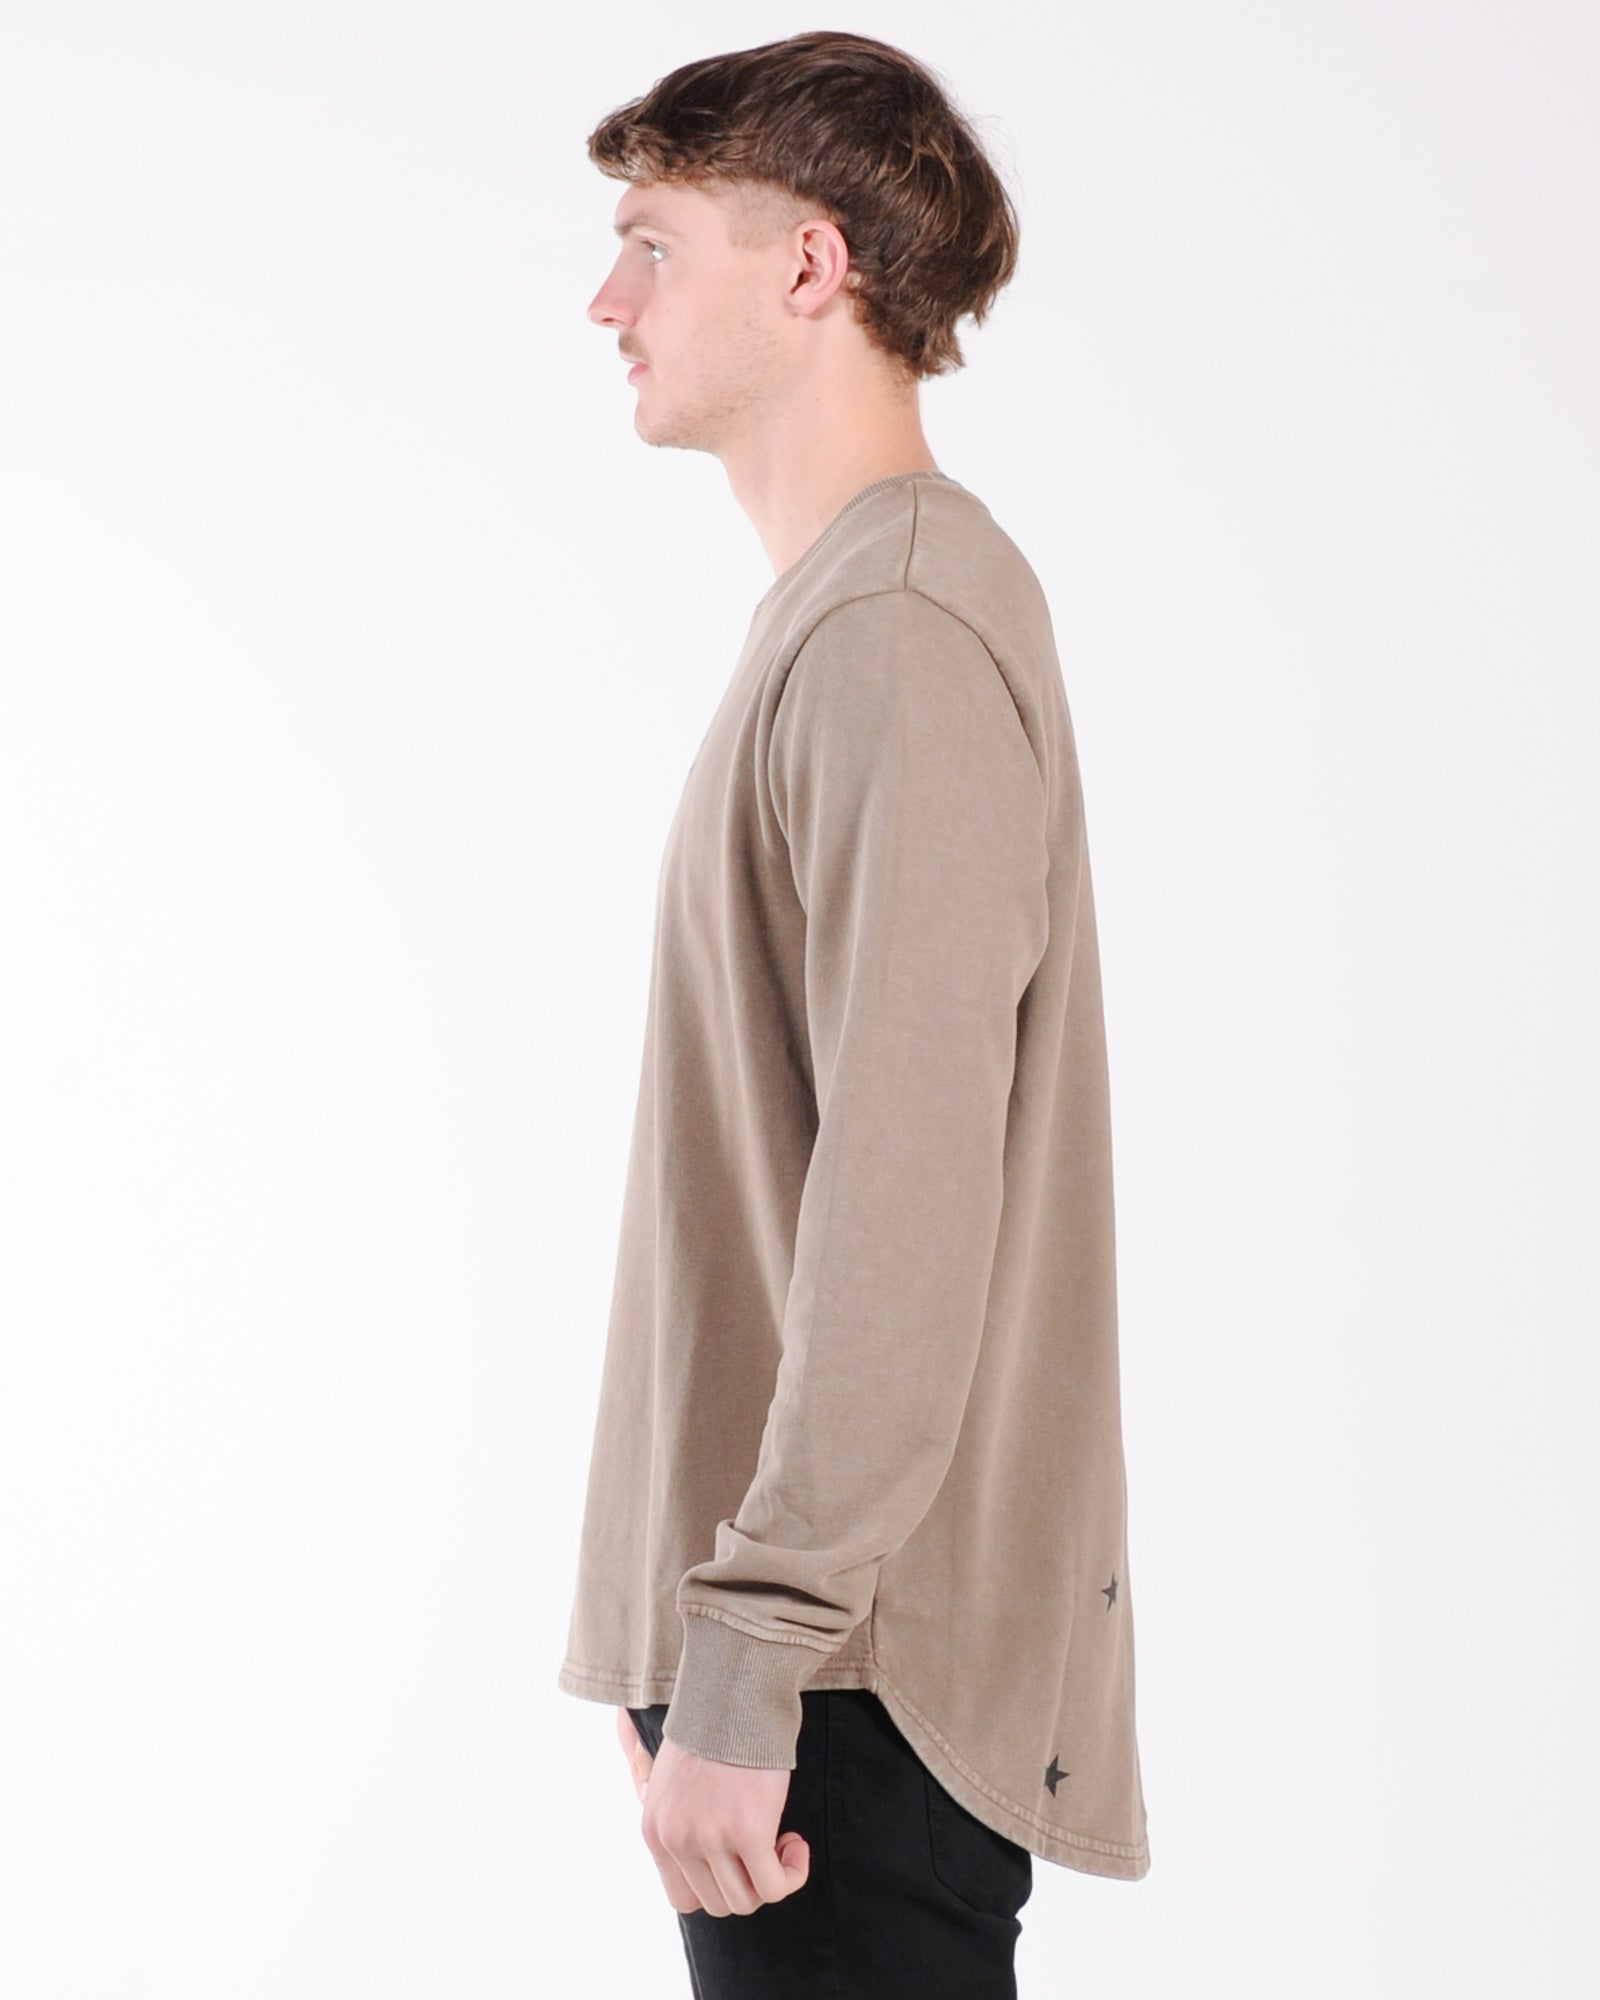 Silent Theory Outlaw Crew Sweat - Brown